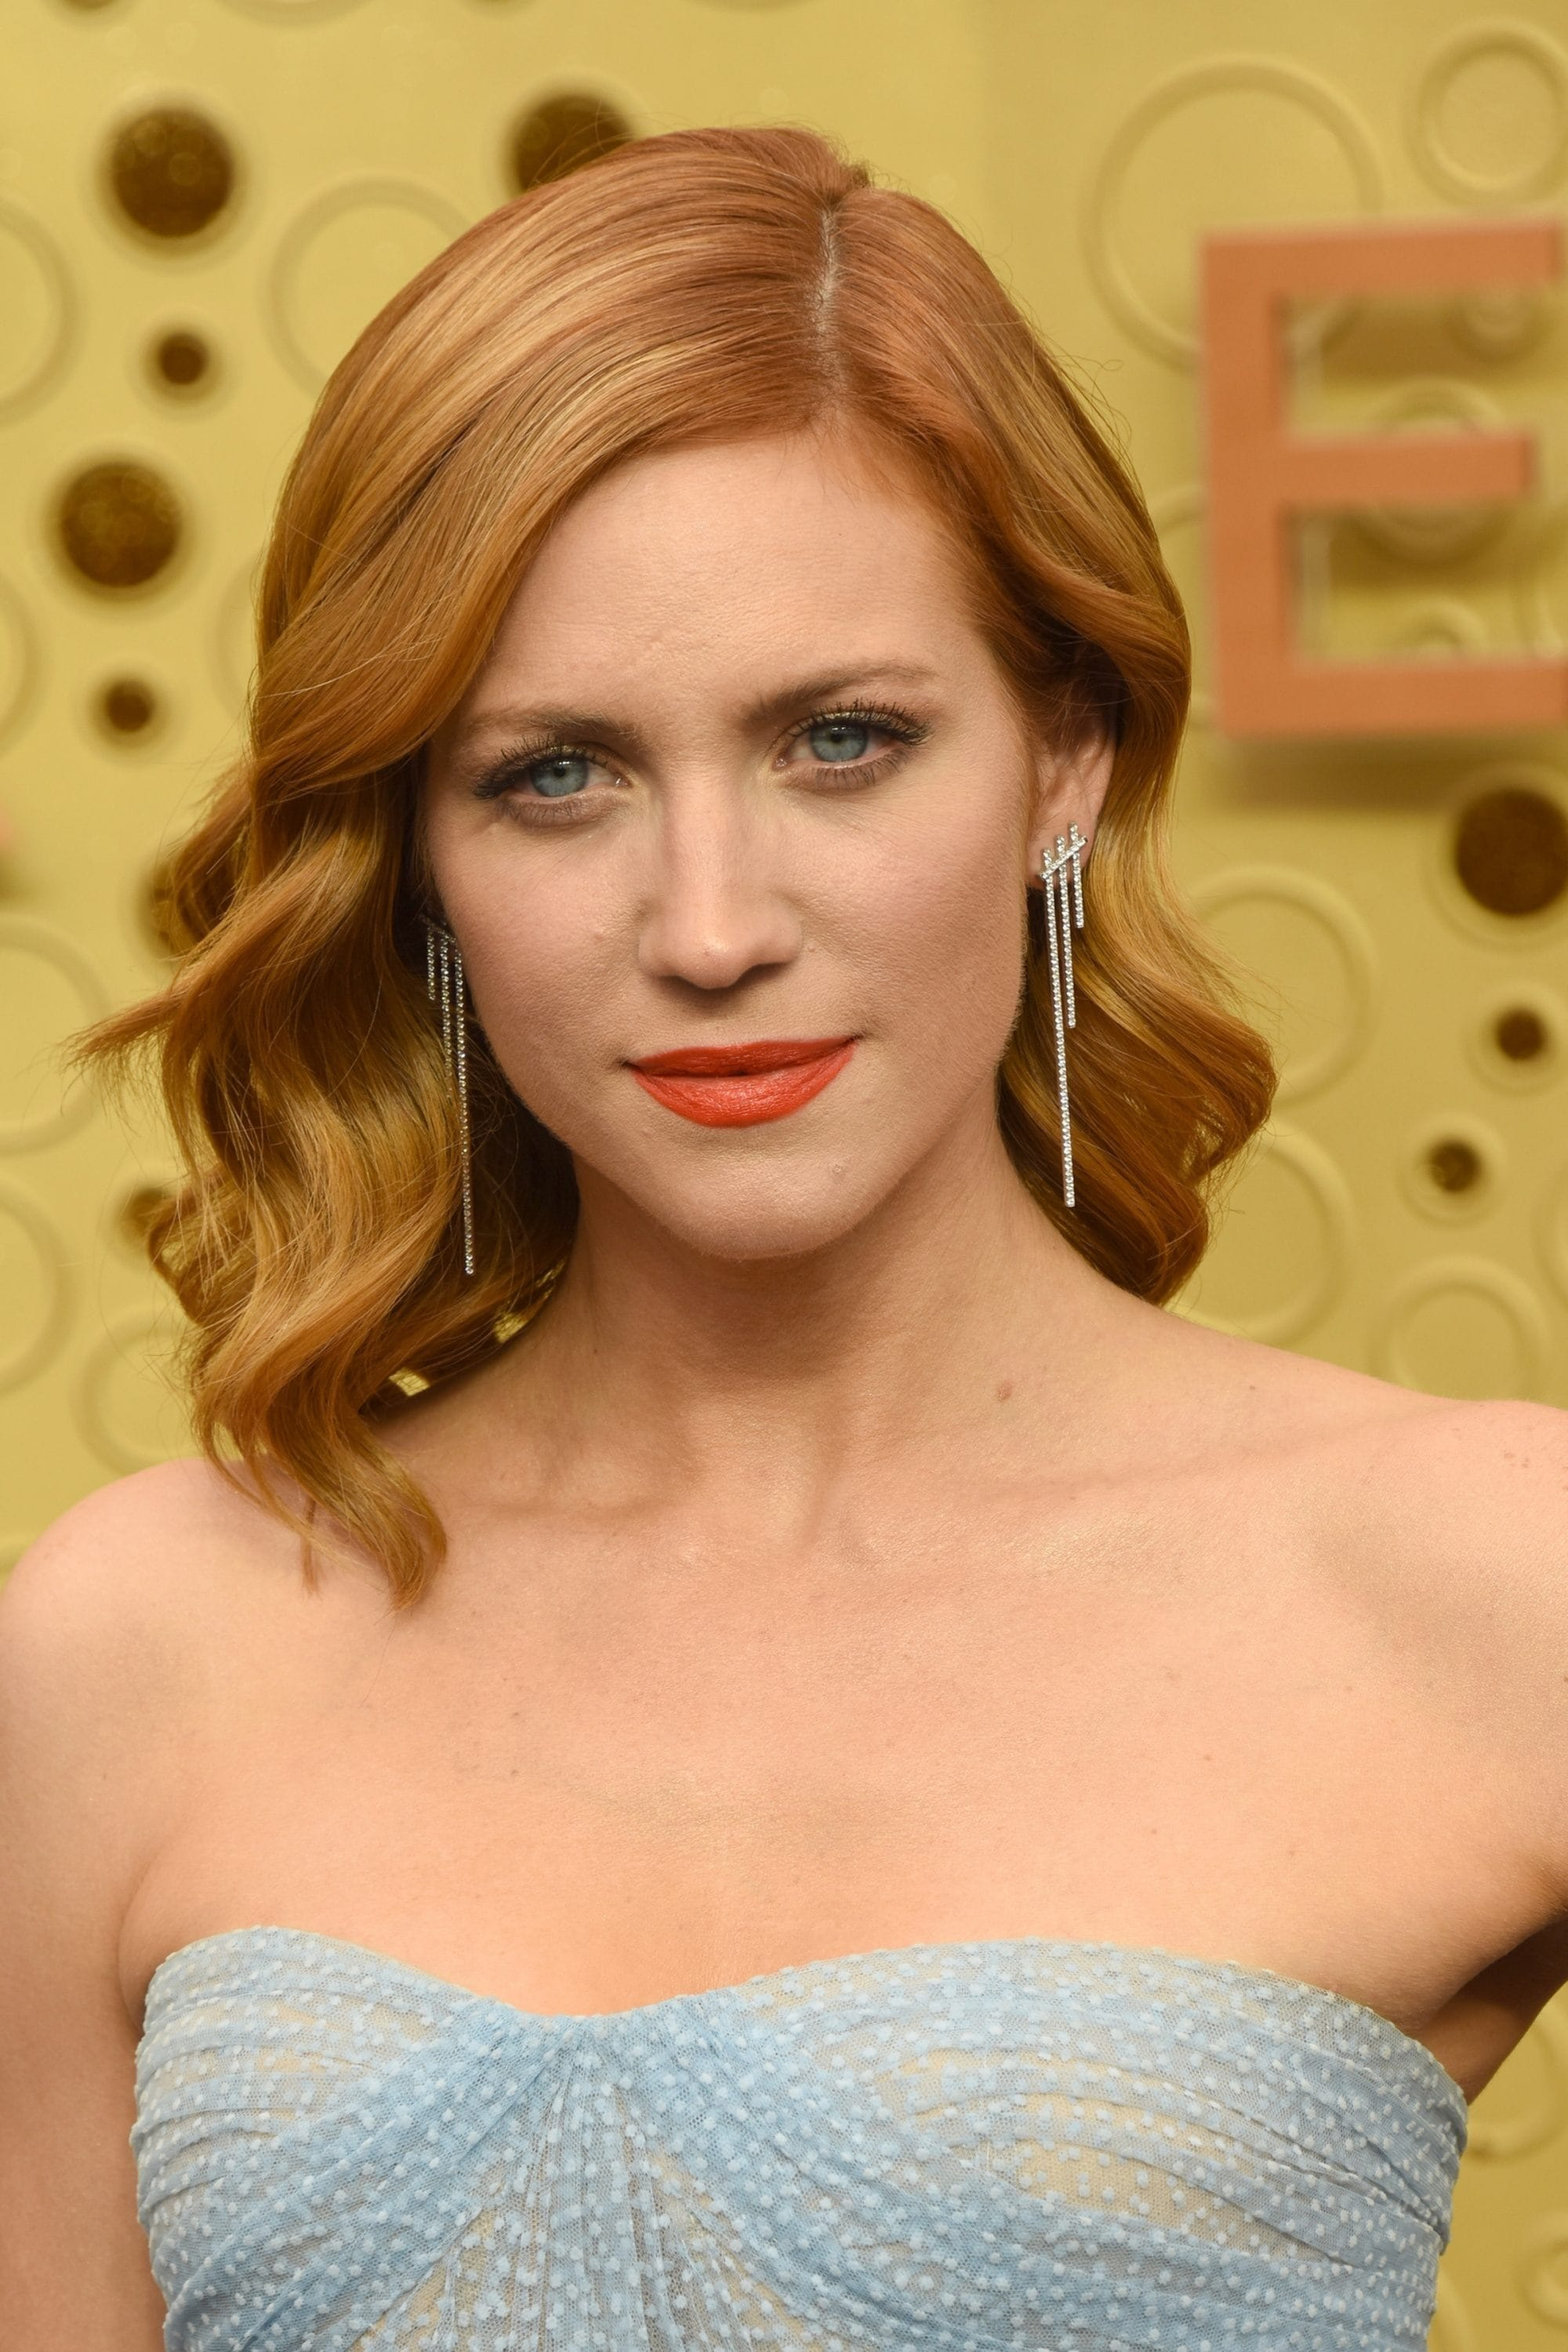 Emmy Awards 2019 Best Hairstyles: Brittany Snow with her strawberry blonde waves